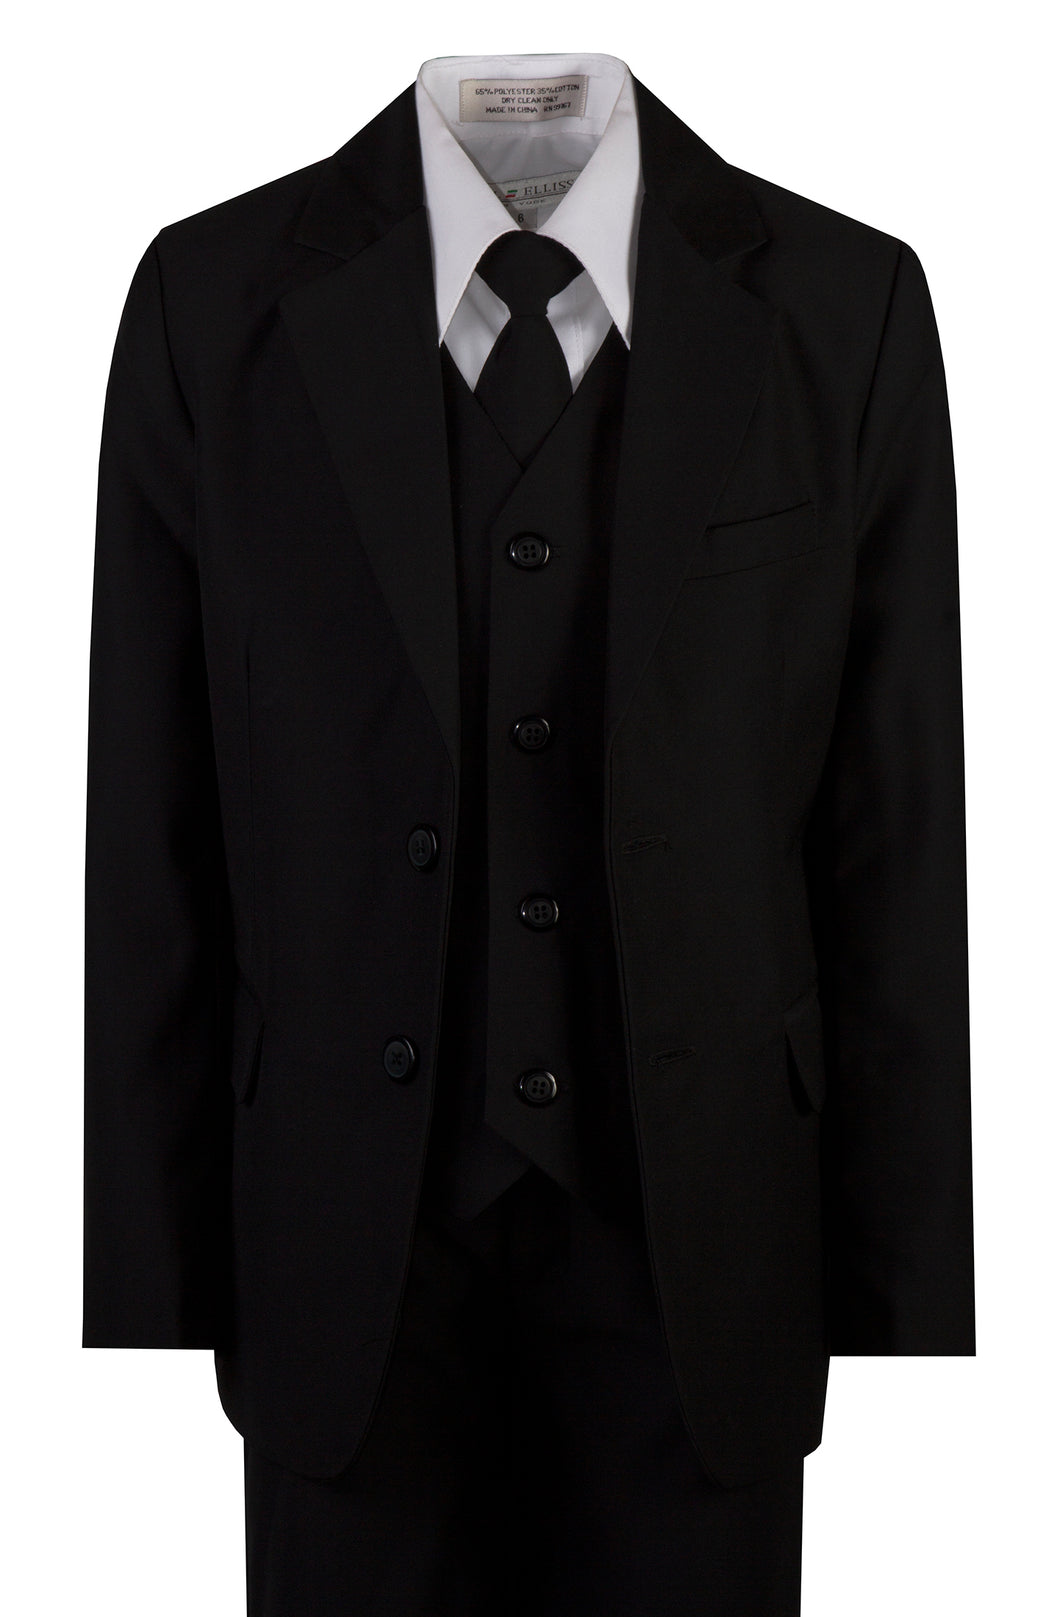 Classic 2 Button Notch Slim Fit Suit with Matching Neck Tie (Dustin)